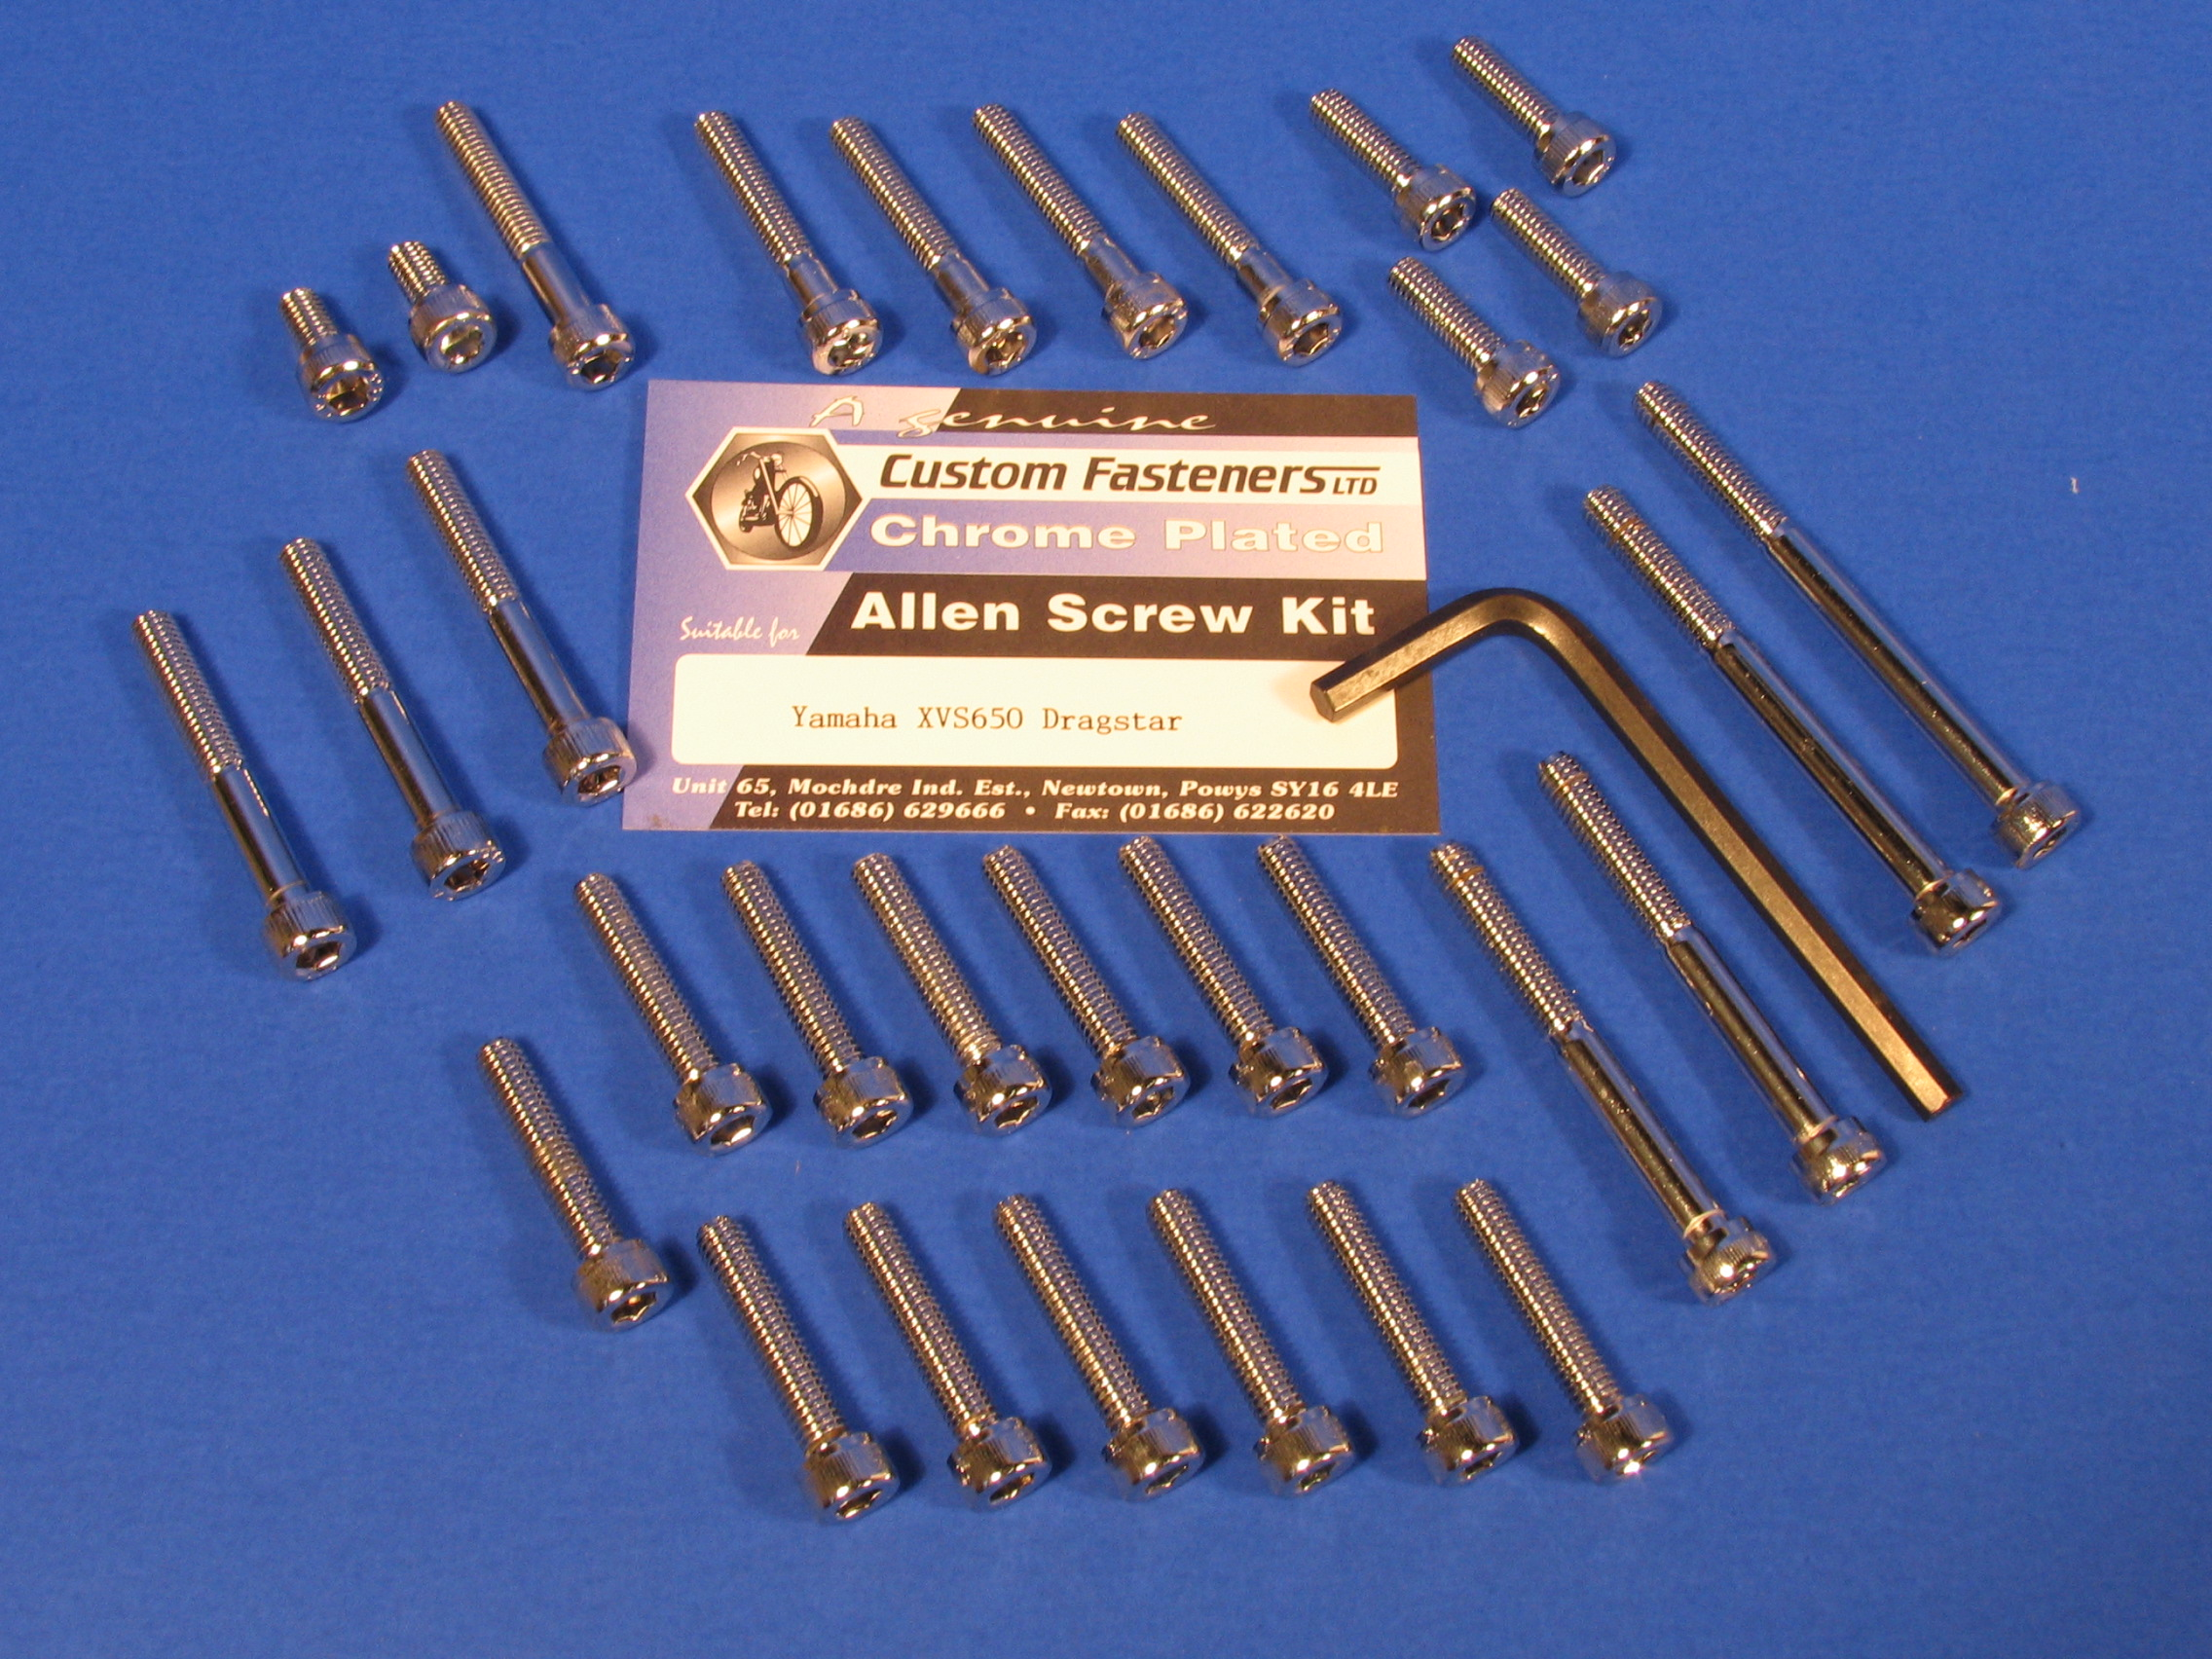 Honda Allen Screw Kits